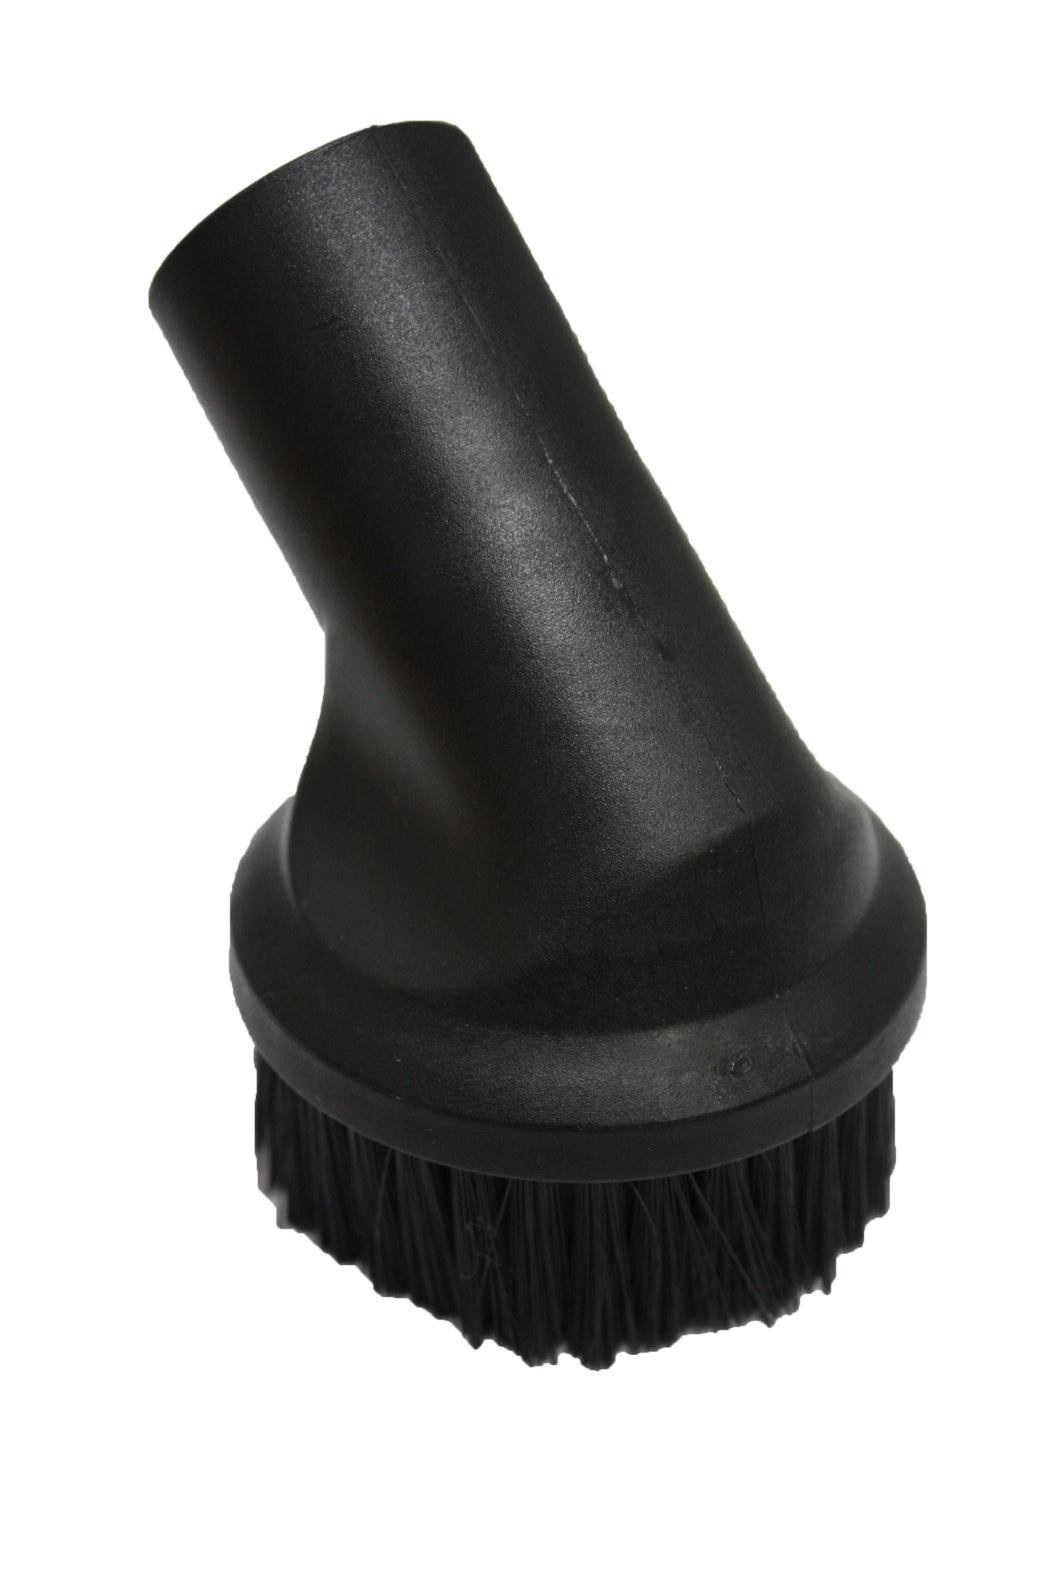 FILTA ROUND DUSTING BRUSH 32MM